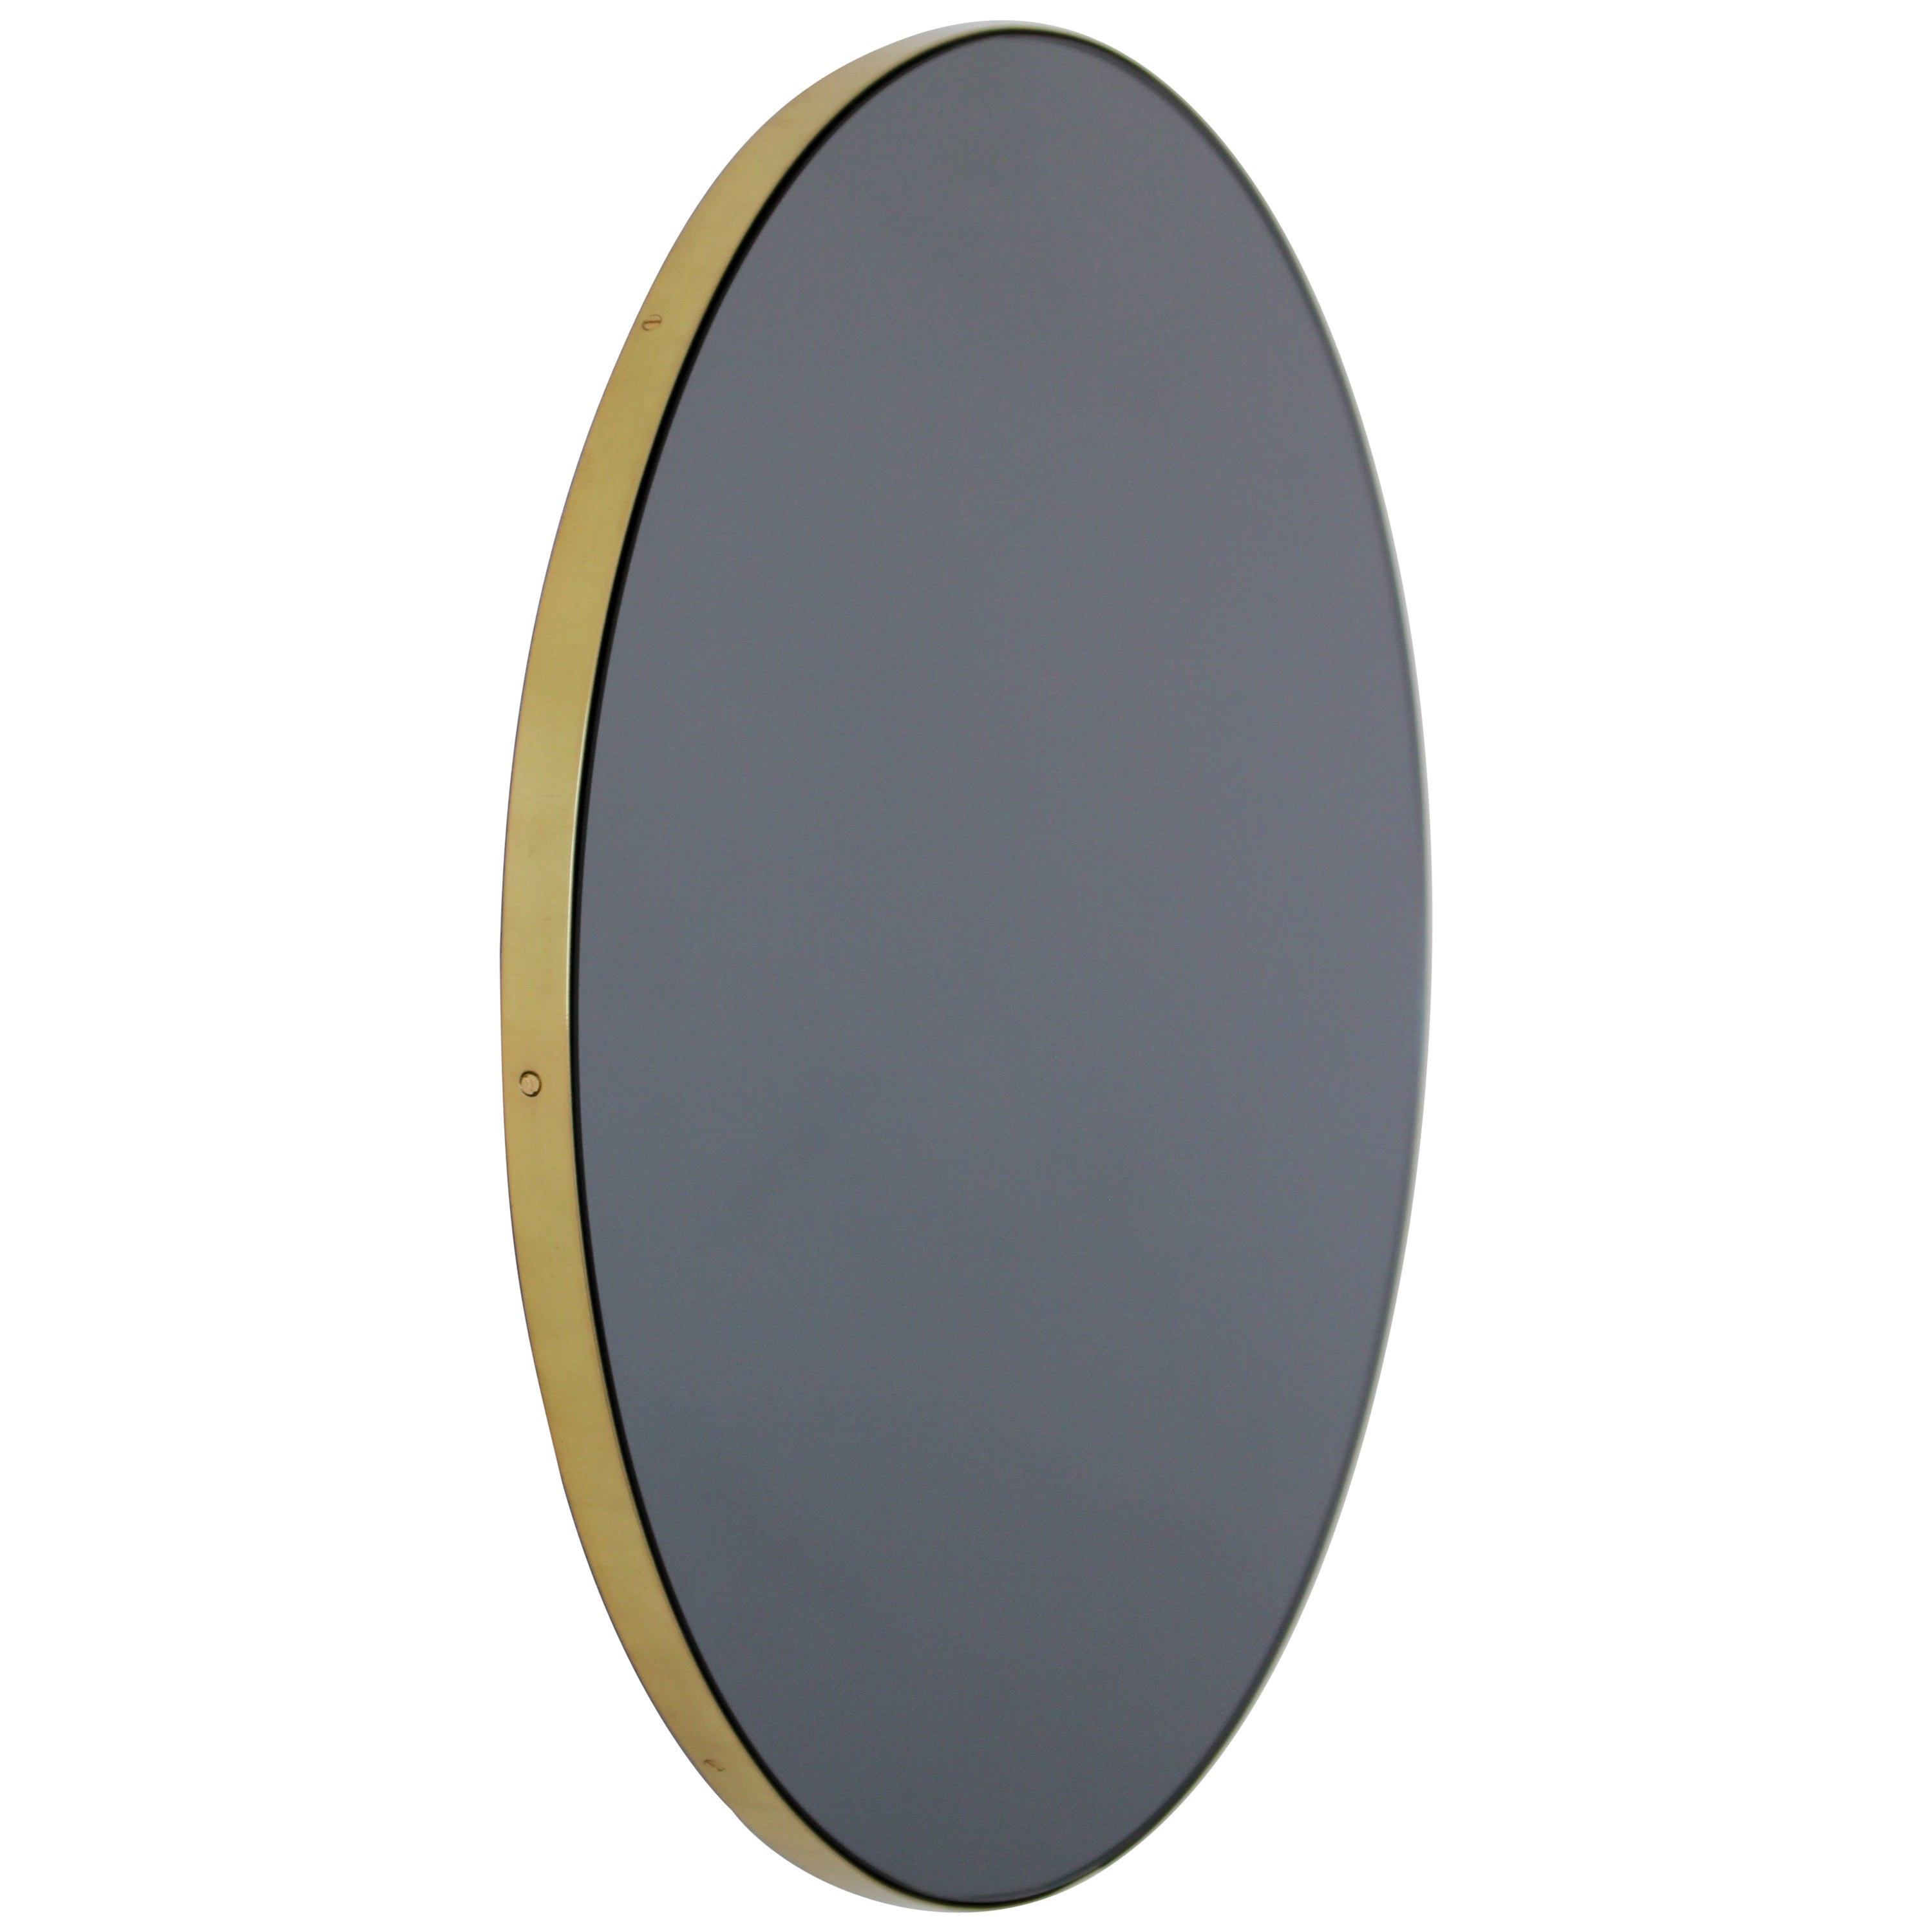 Orbis™ Black Tinted Round Modern Handcrafted Mirror with a Brass Frame